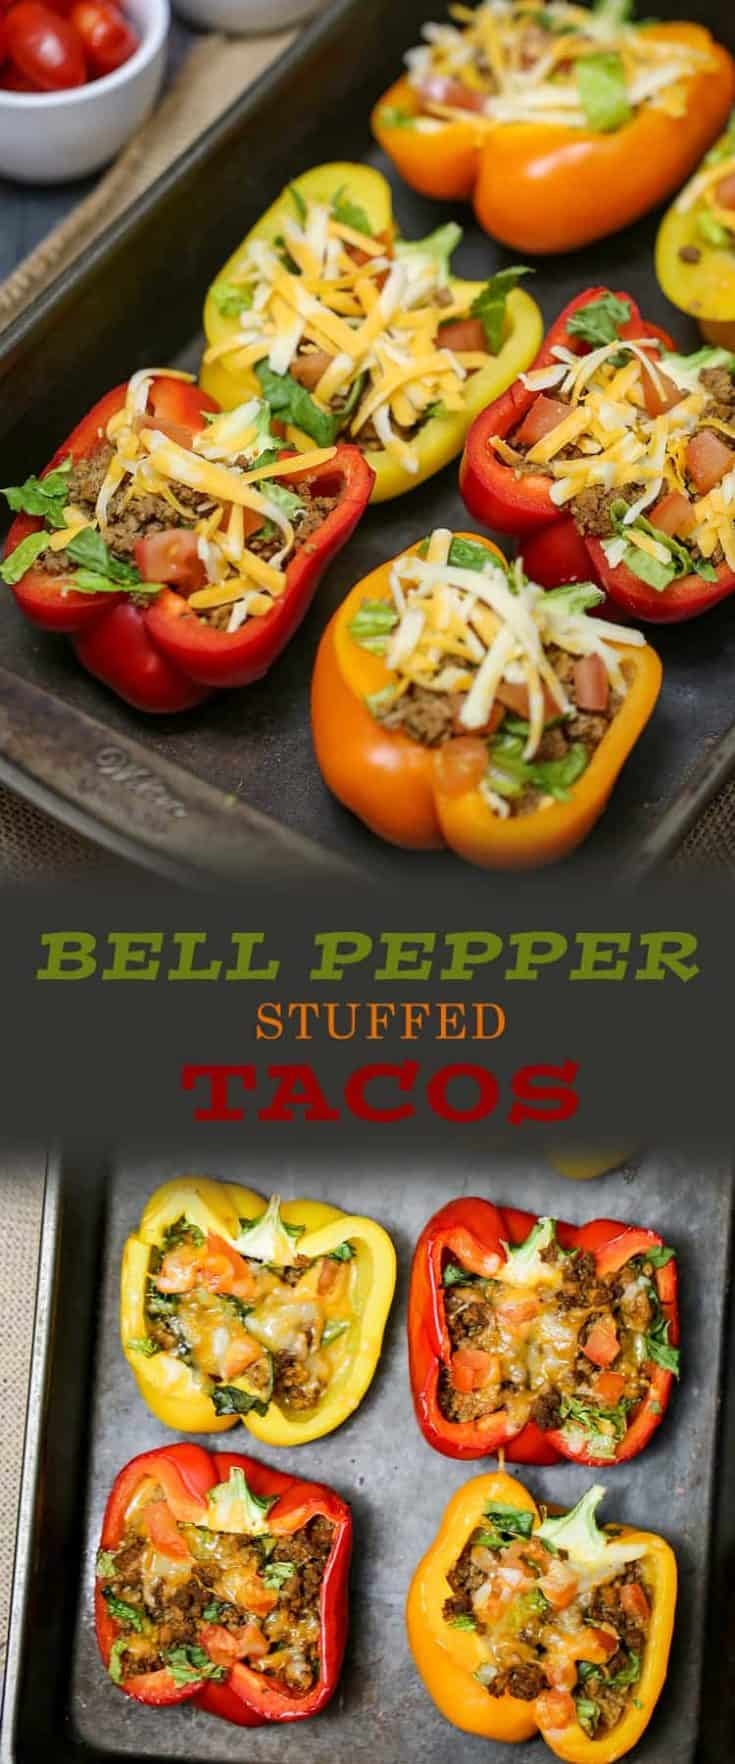 Bell Pepper Stuffed Tacos are baked with your favourite taco toppings inside, a great low-carb and low-calorie meal or appetizer option. With this no-fuss recipe, pre-cooking the bell peppers is not necessary. #stuffedpeppers #lowcarb #keto #tacostuffedpeppers